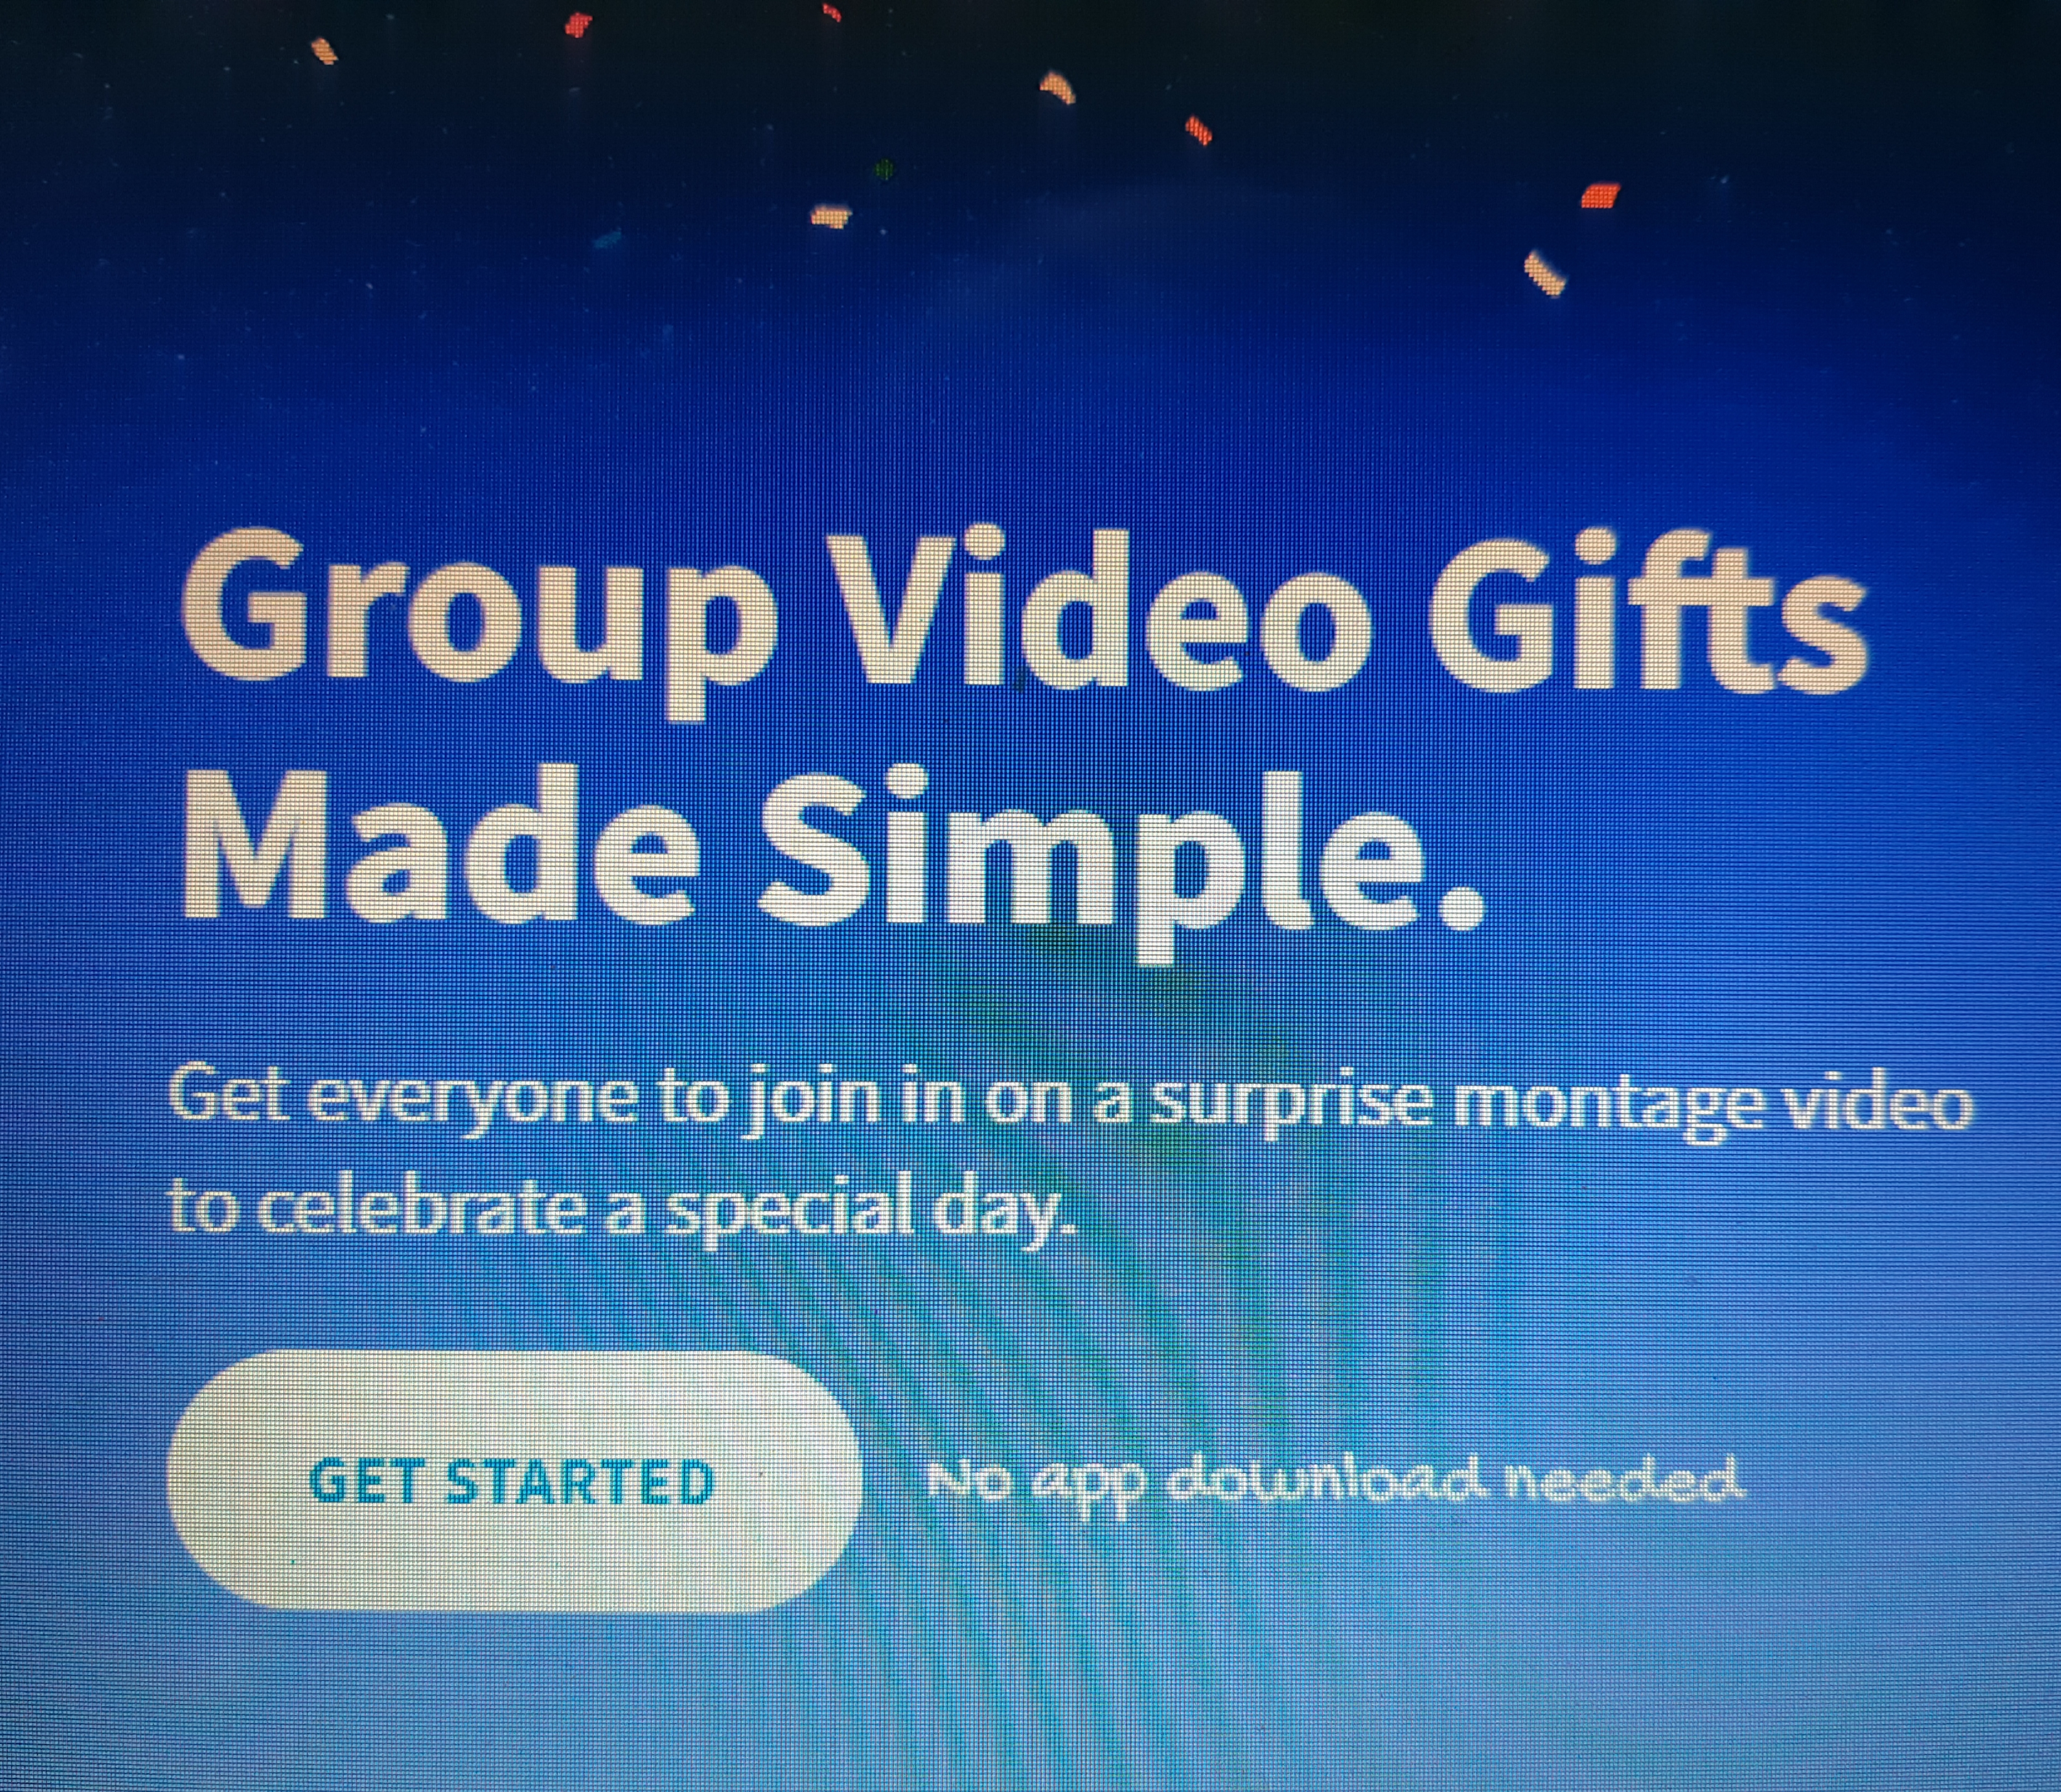 Video Gifts Made Simple